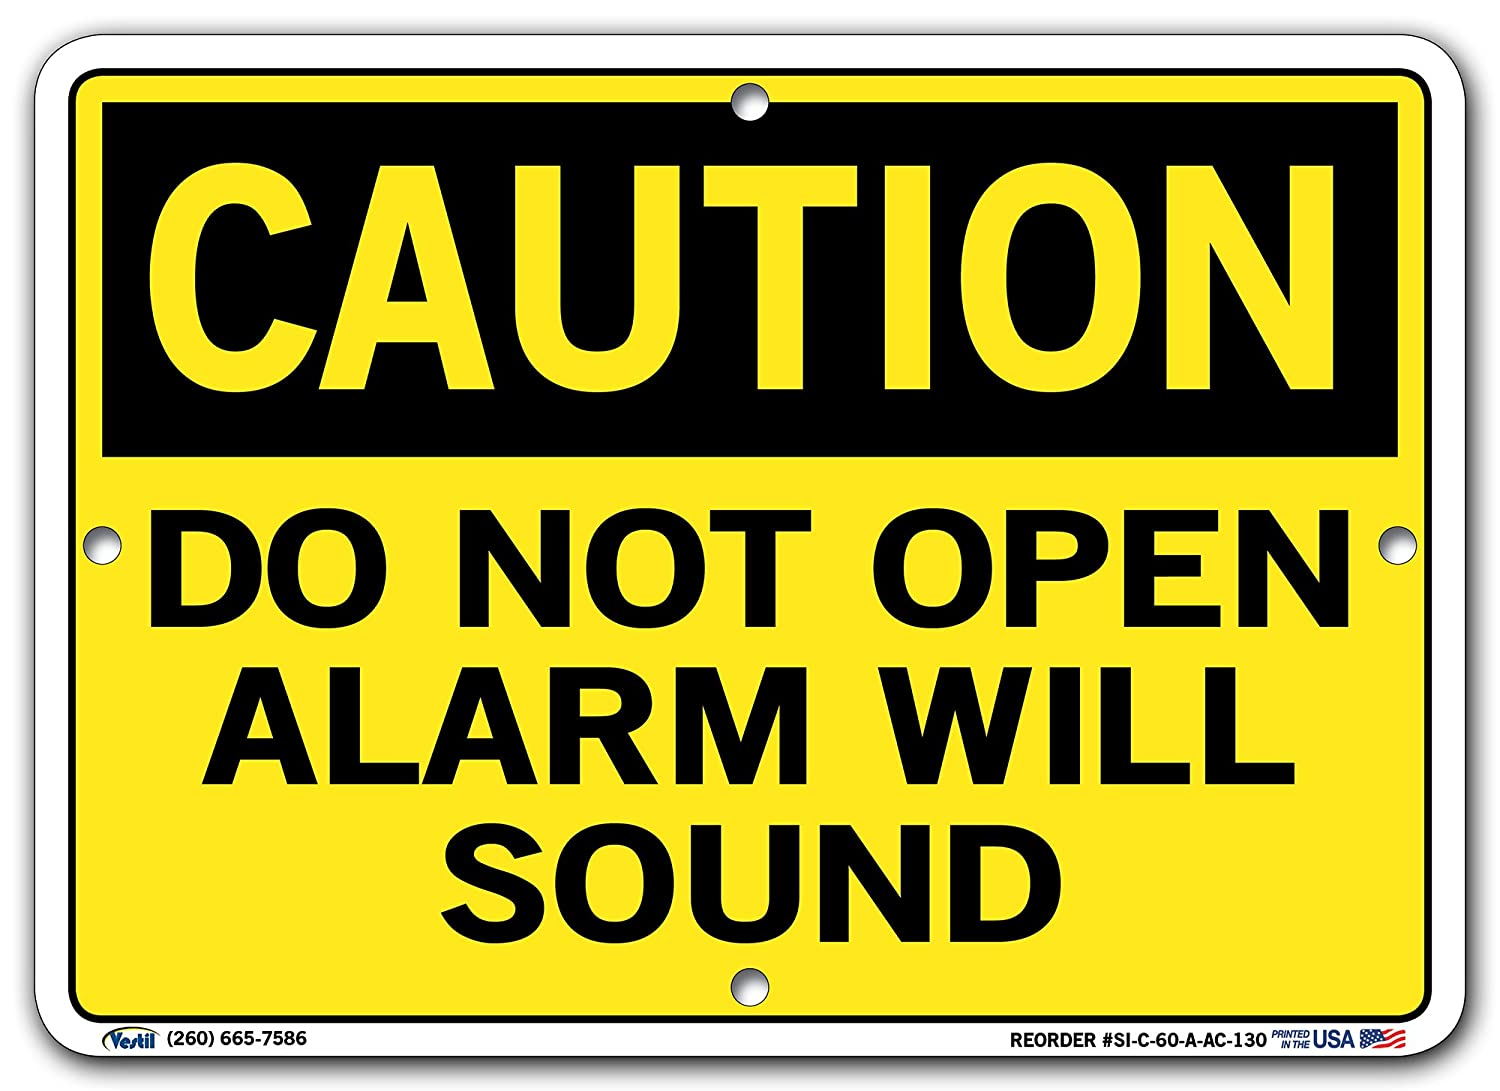 Vestil SI-C-60-A-AC-130 DO NOT OPEN ALARM WILL SOUND Caution Sign